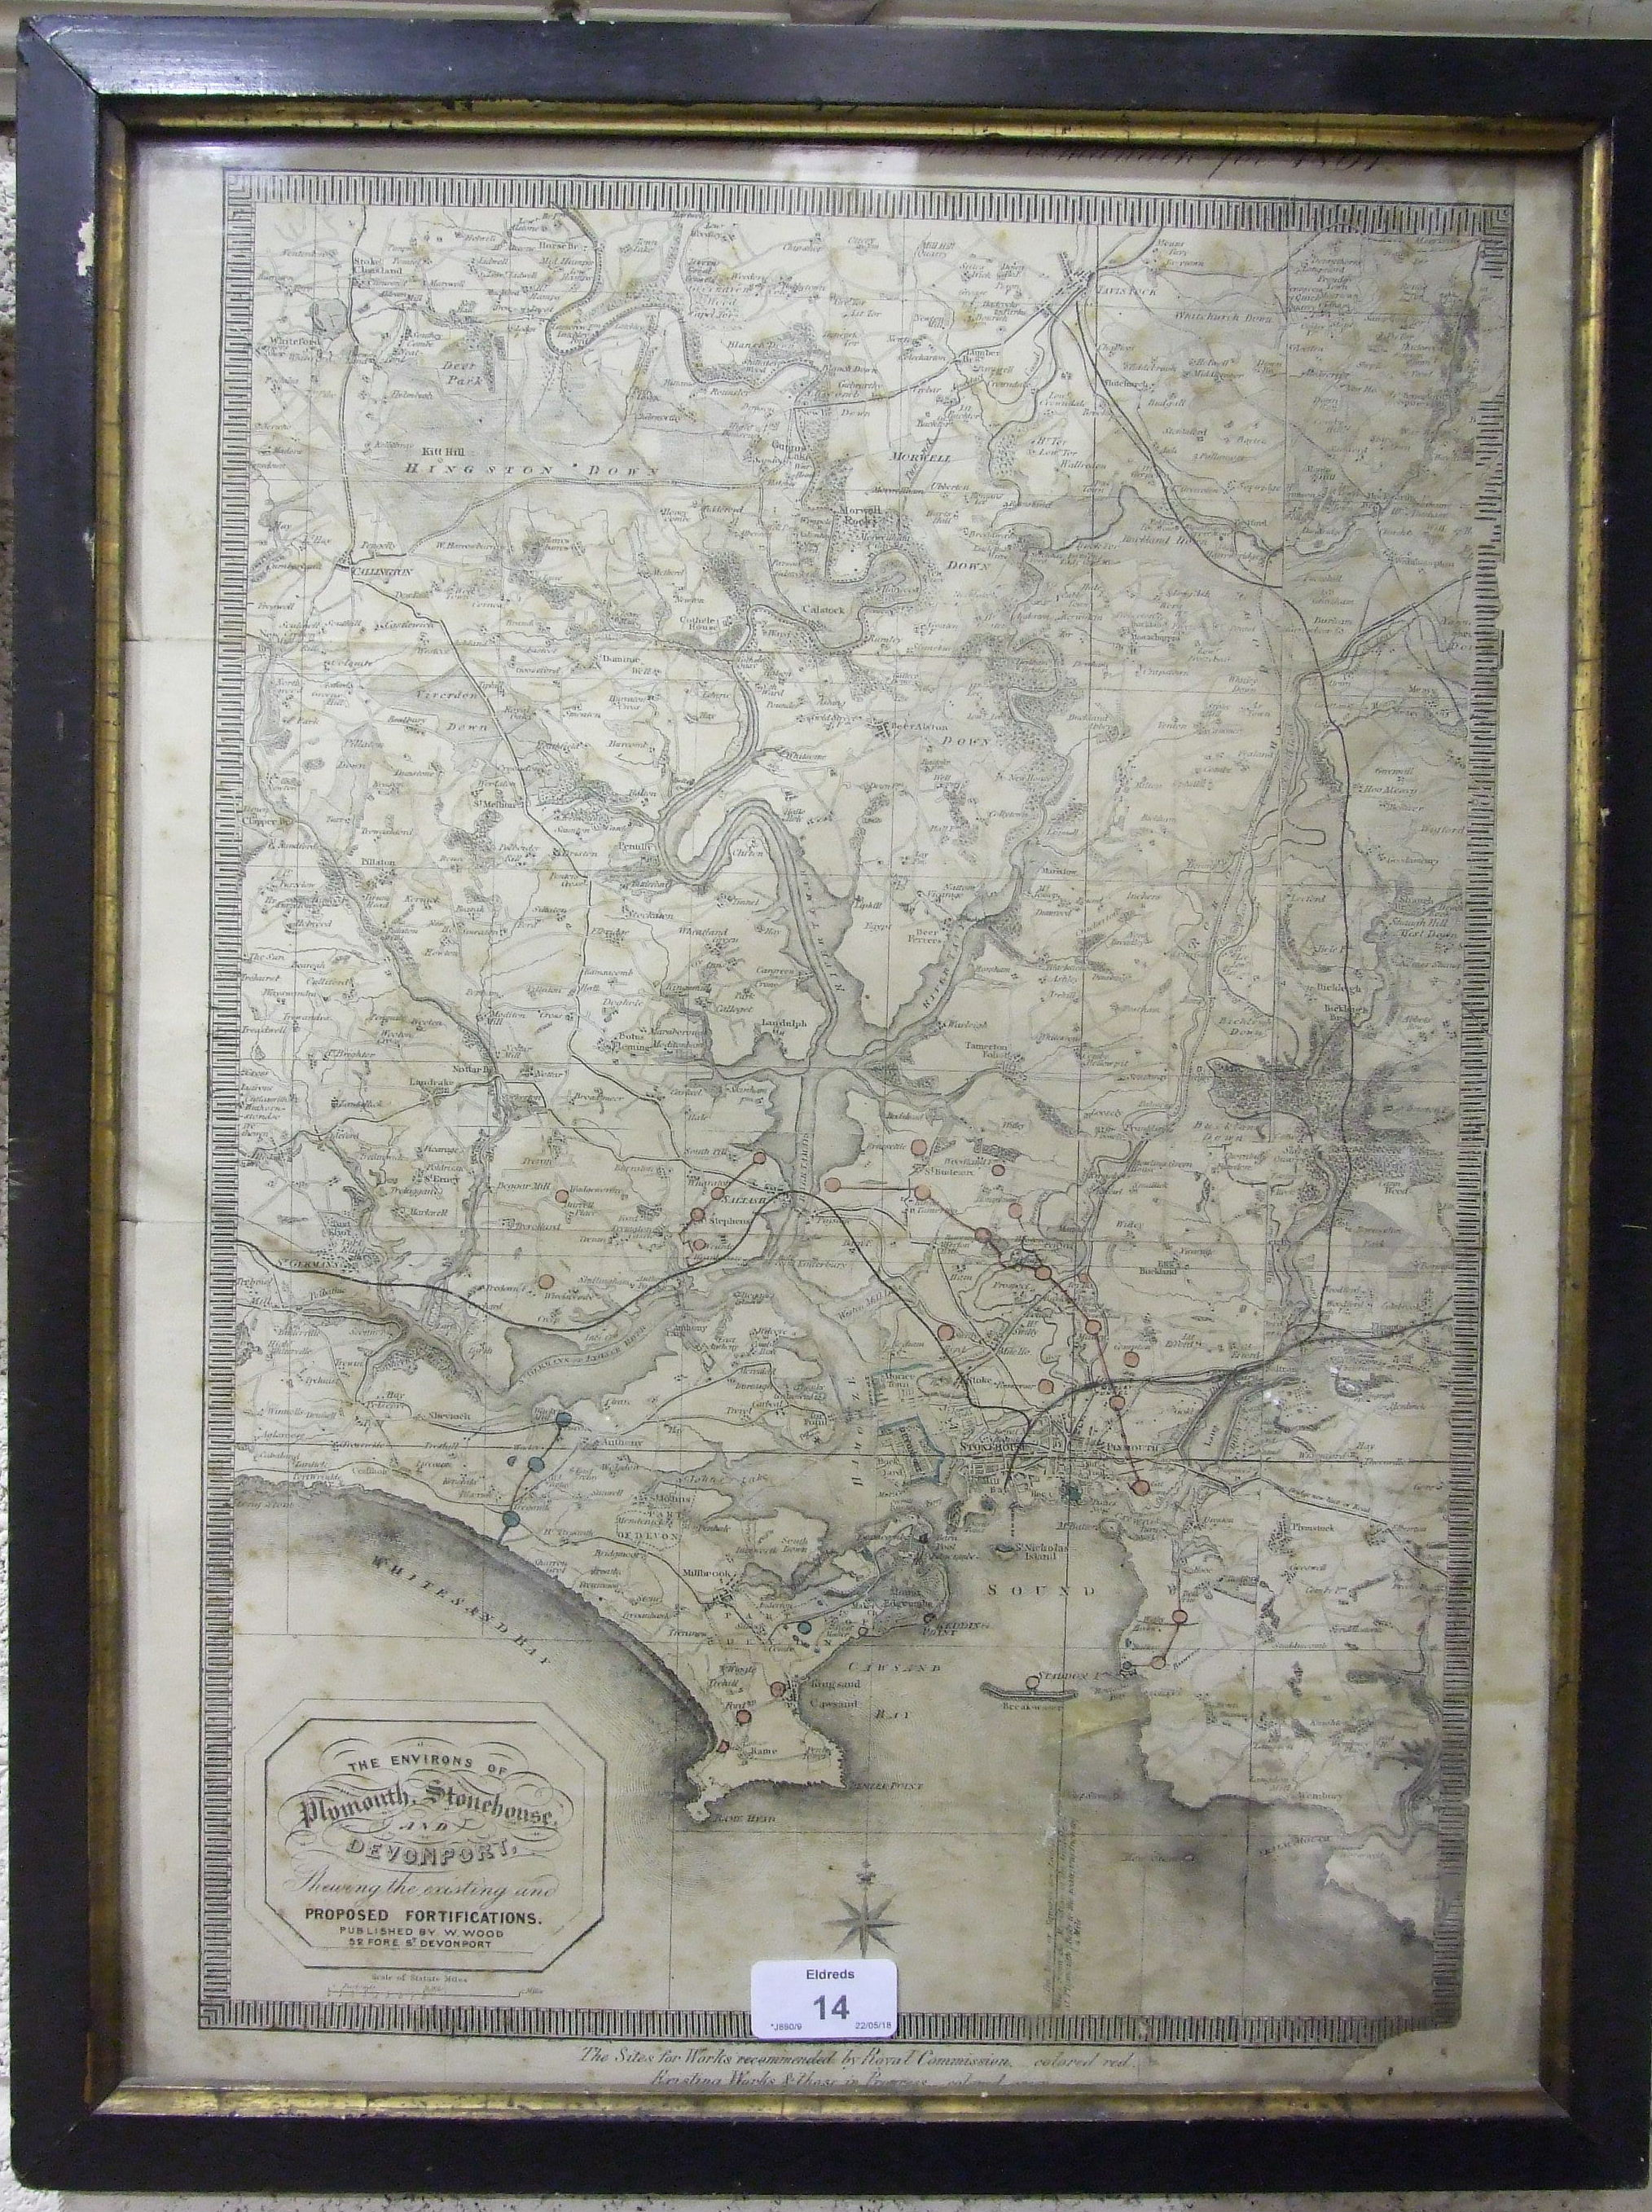 A 19th century map 'The Environs of Plymouth, Stonehouse and Devonport showing the Existing and